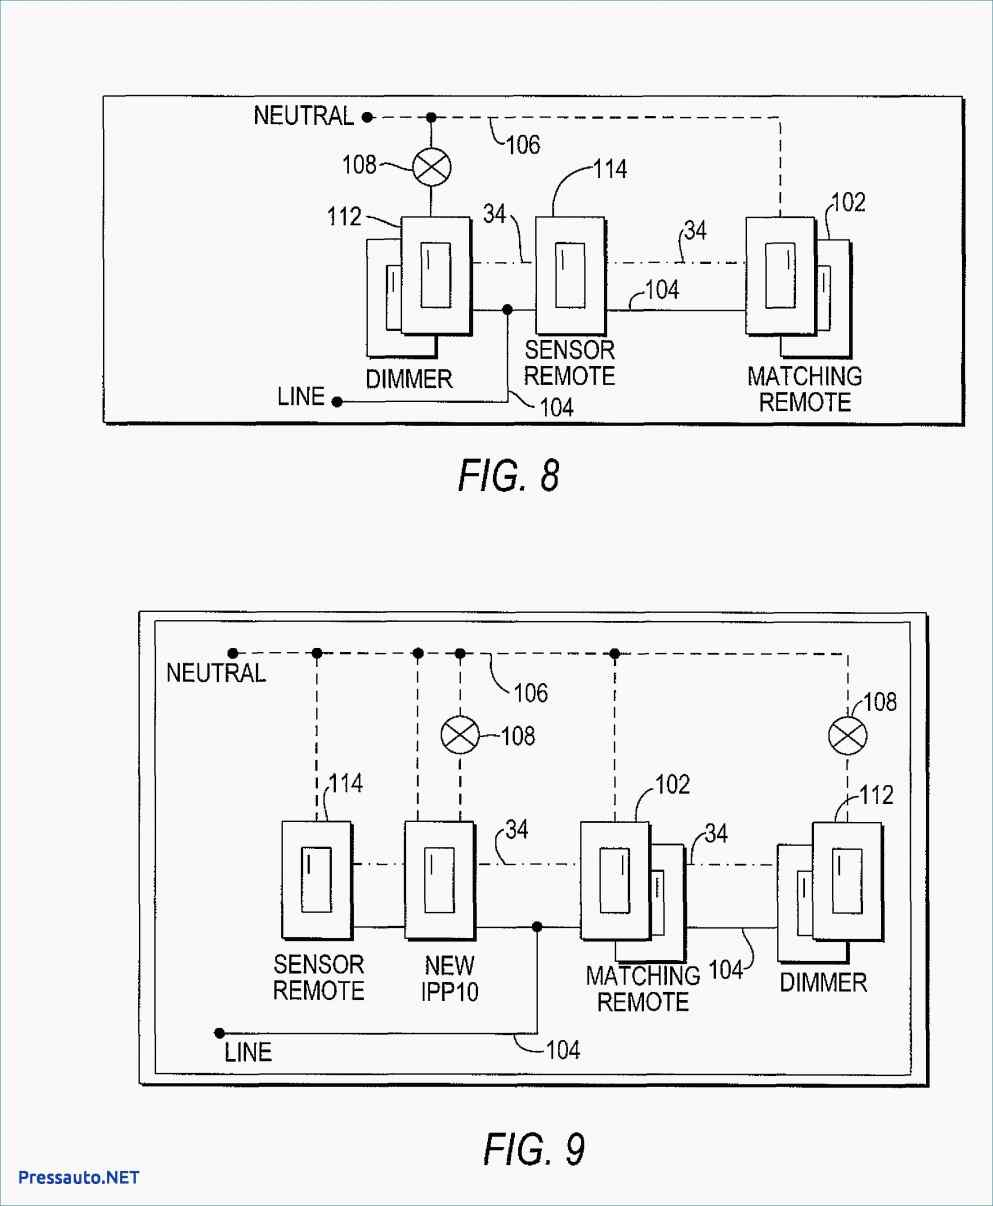 lutron 3 way dimmer switch wiring diagram wiring diagram 3 way switch beautiful lutron diva 3 way dimmer wiring diagram wiring 13q lutron dvtv wiring diagram wiring diagrams for dummies \u2022